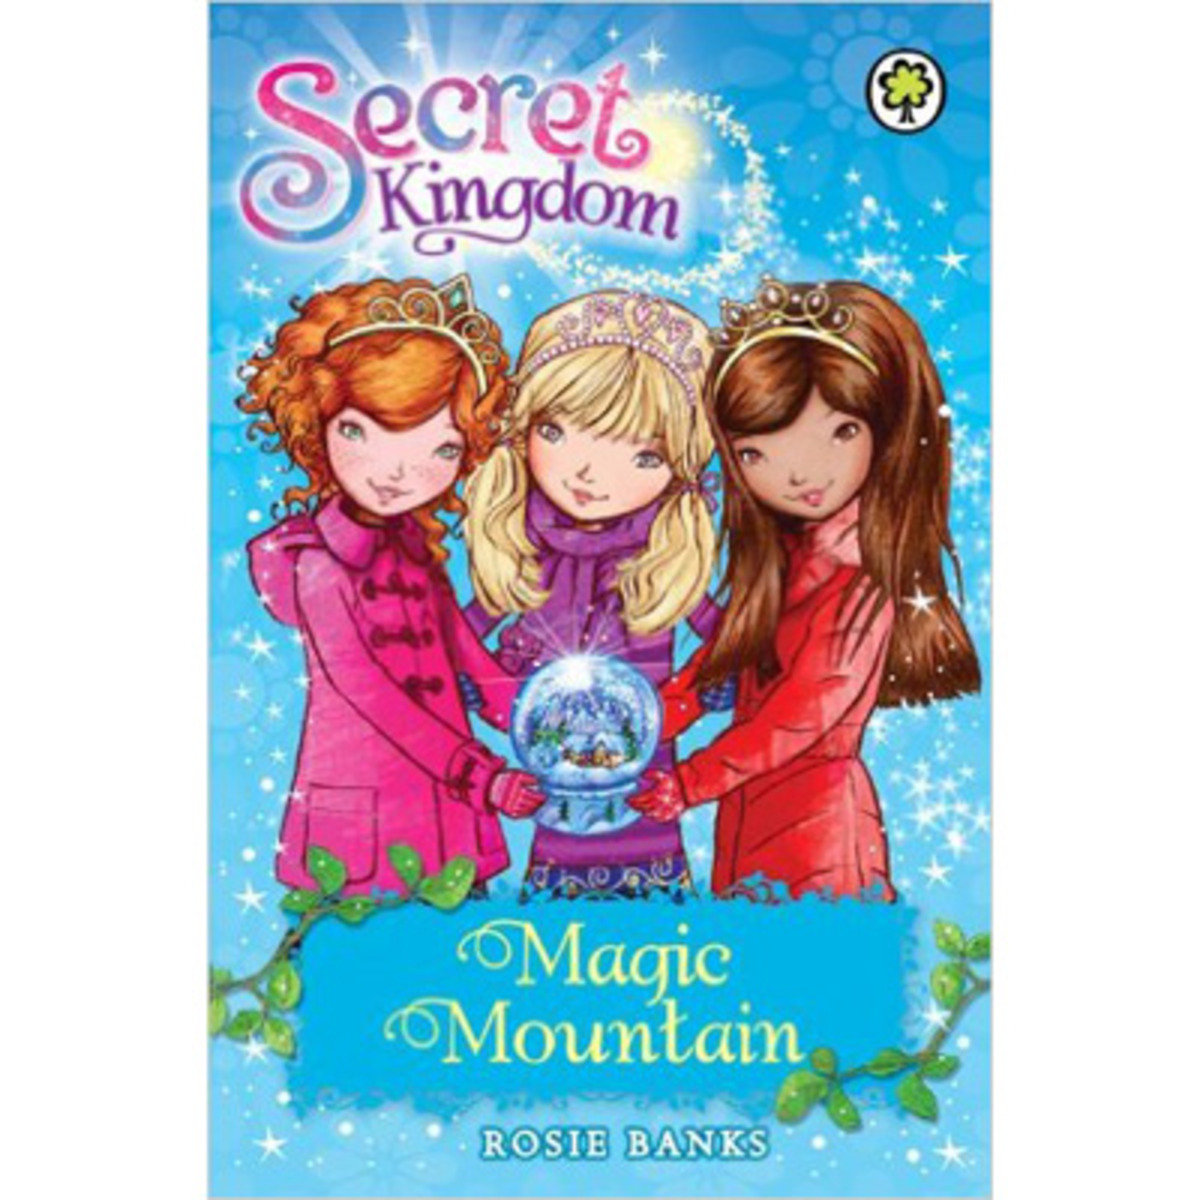 SECRET KINGDOM #5 MAGIC MOUNTAIN 9781408323687